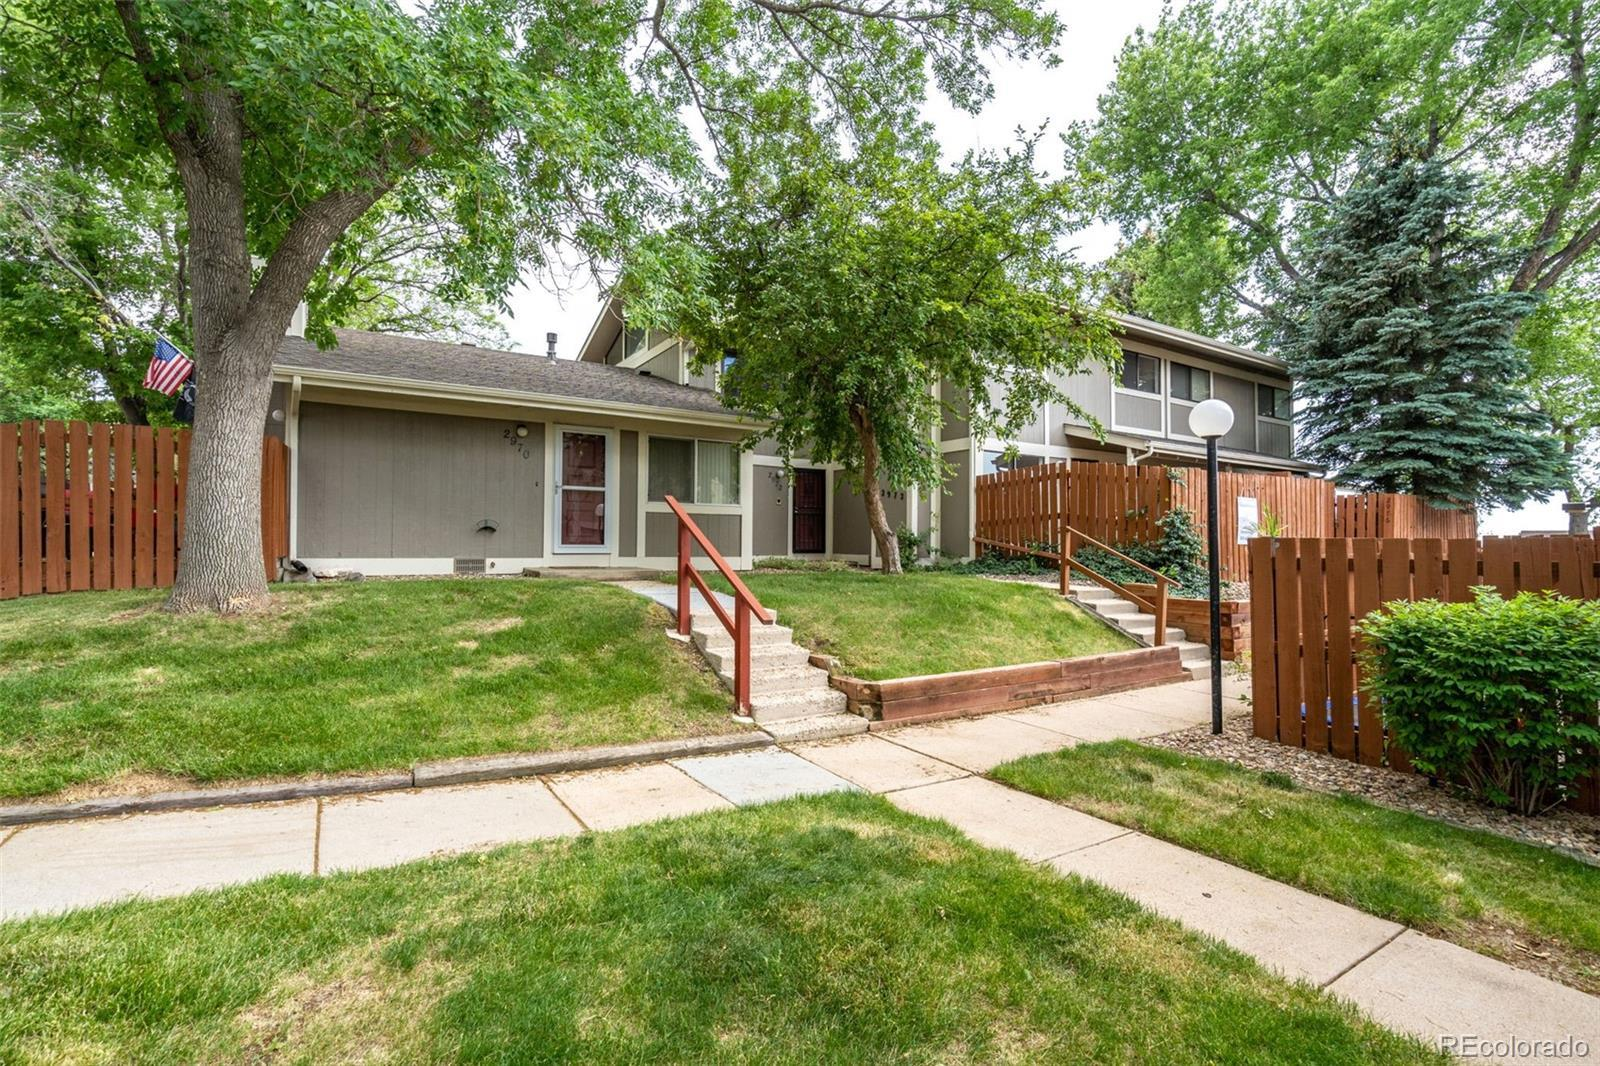 2974 W 119th Avenue, Westminster, CO 80234 - #: 7822598